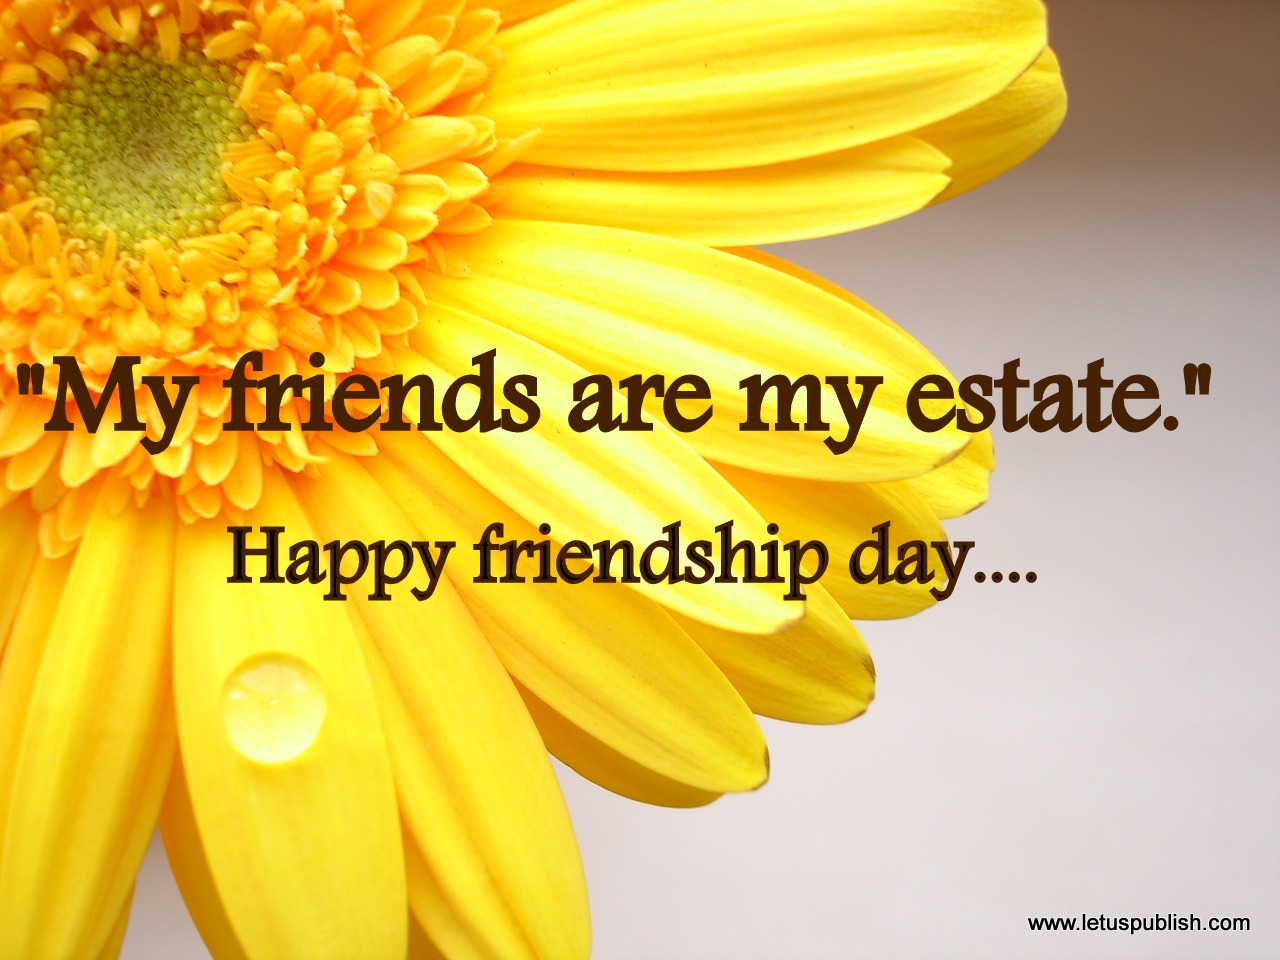 Happy friendship day yellow flower wallpaper